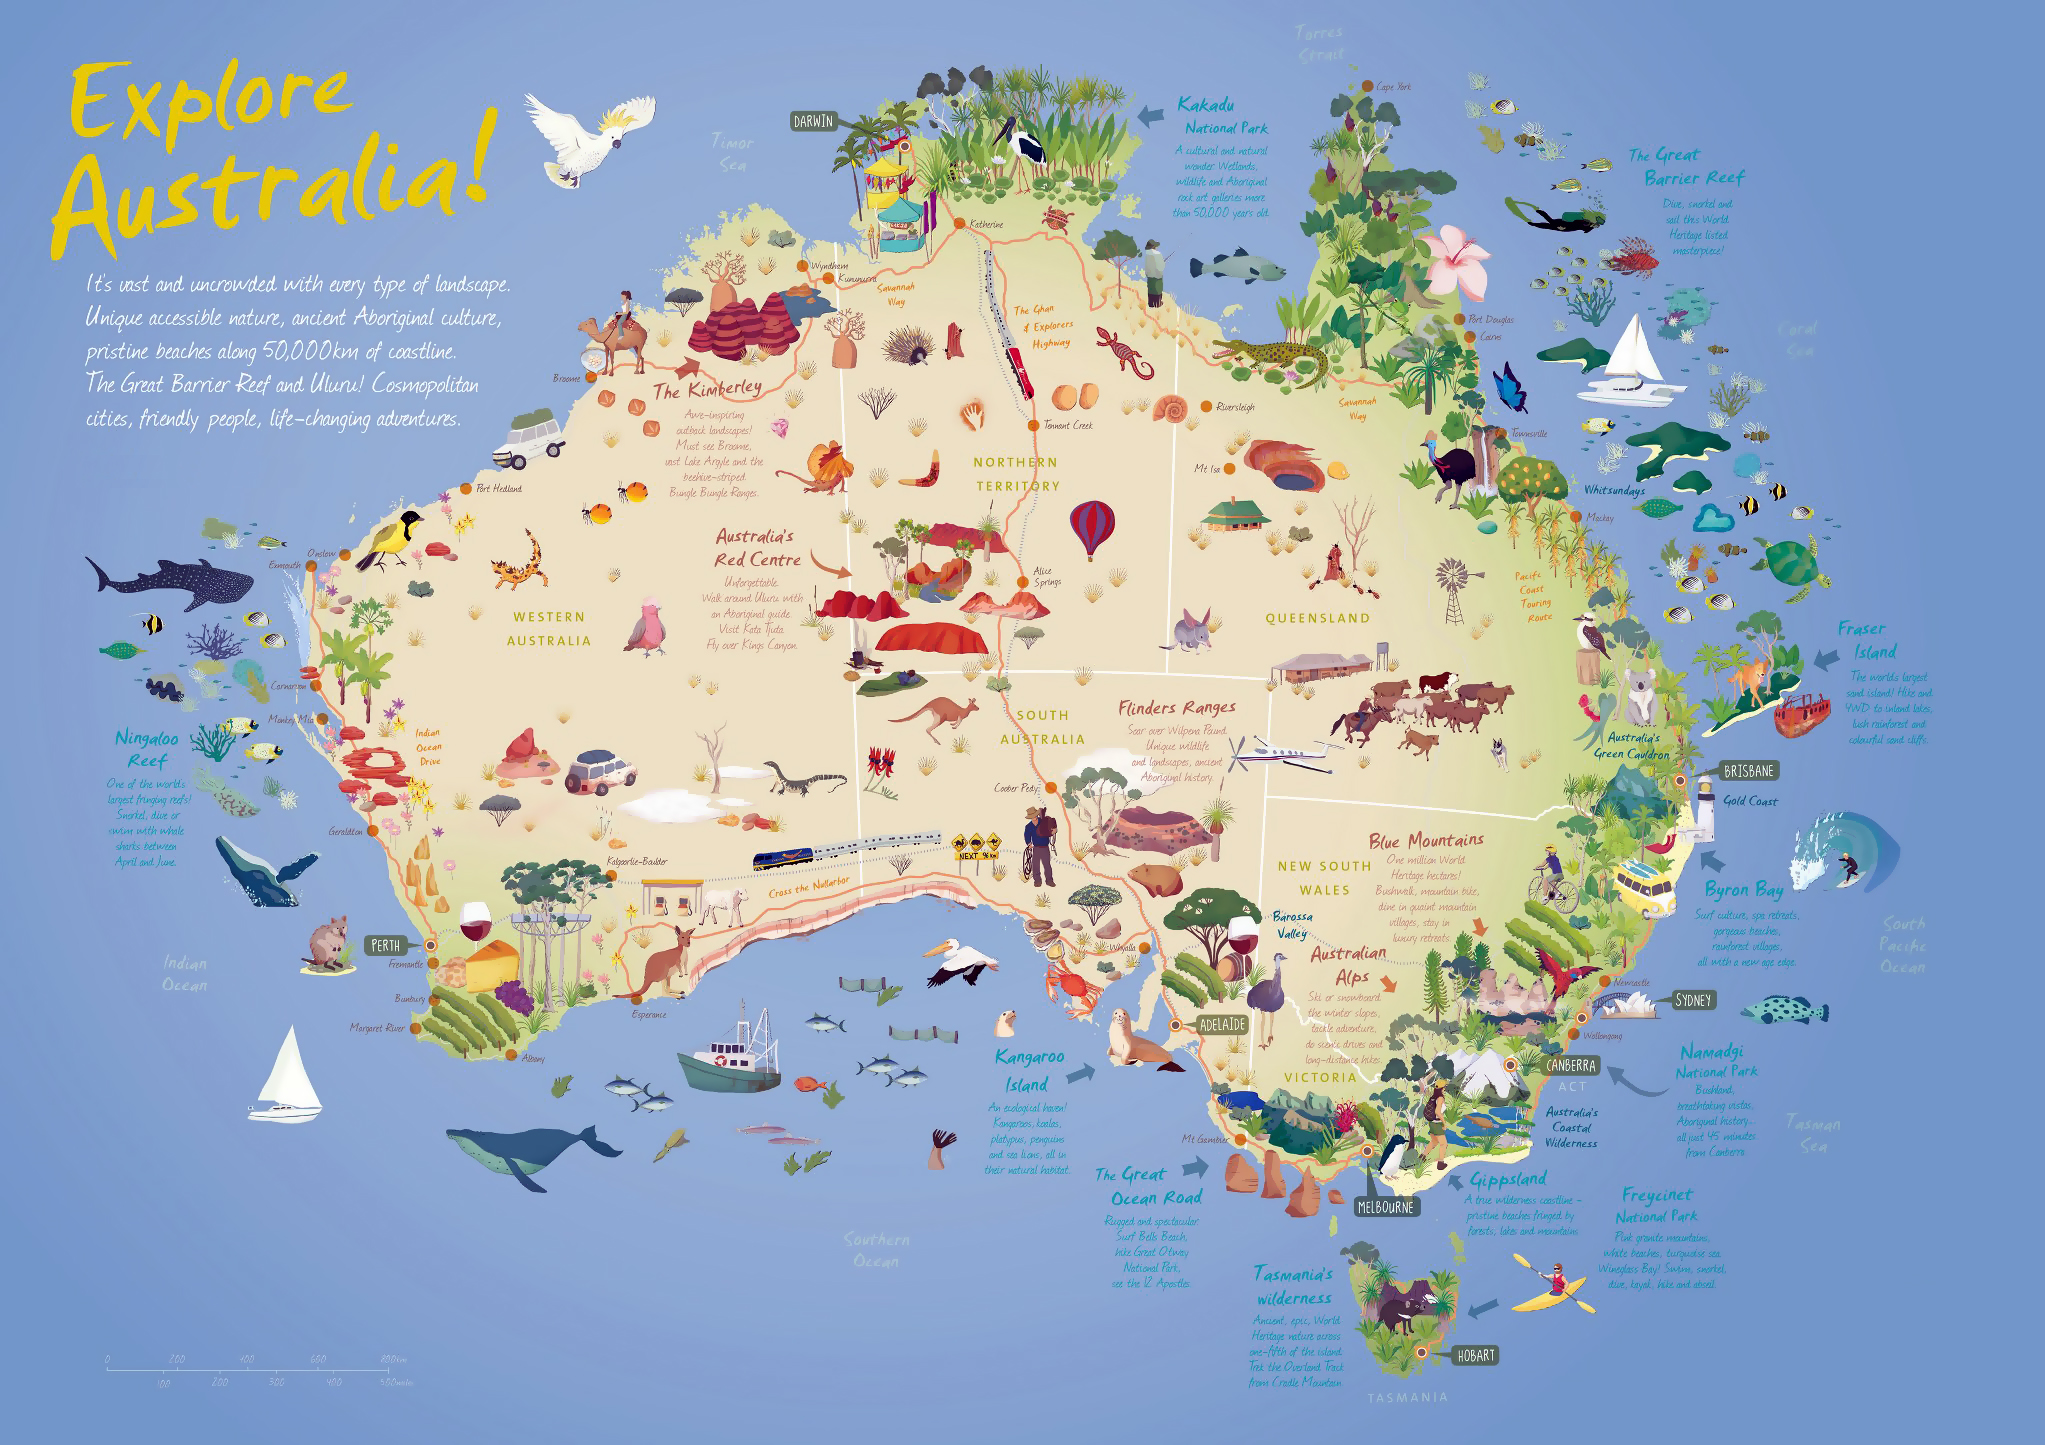 Australia Map Mountains.Large Detailed Travel Illustrated Map Of Australia